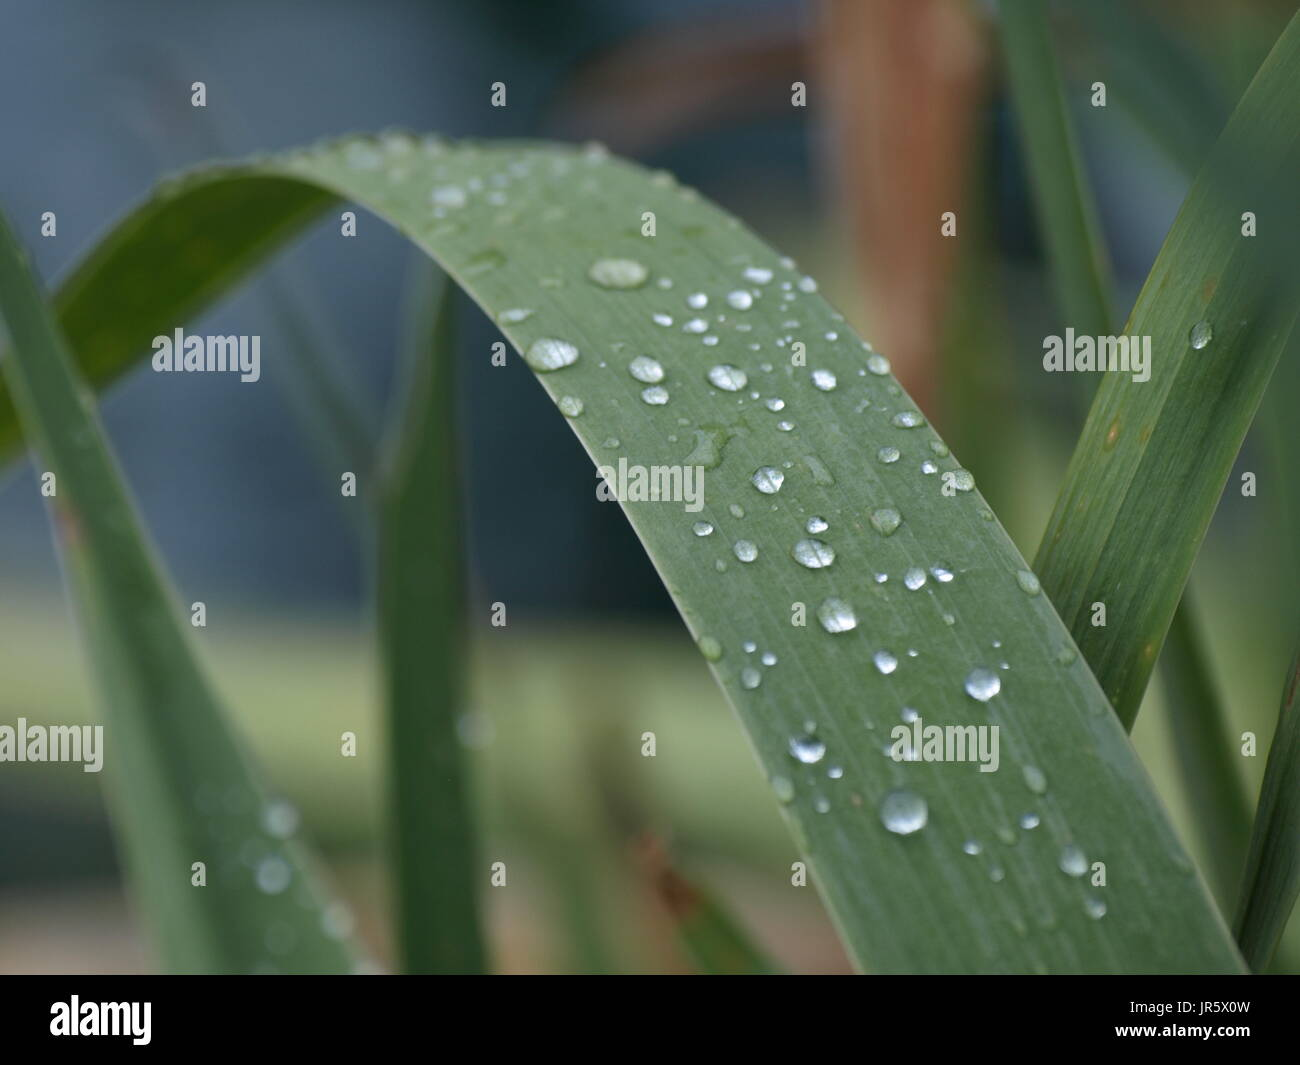 large green plant stem with water droplets on it - Stock Image